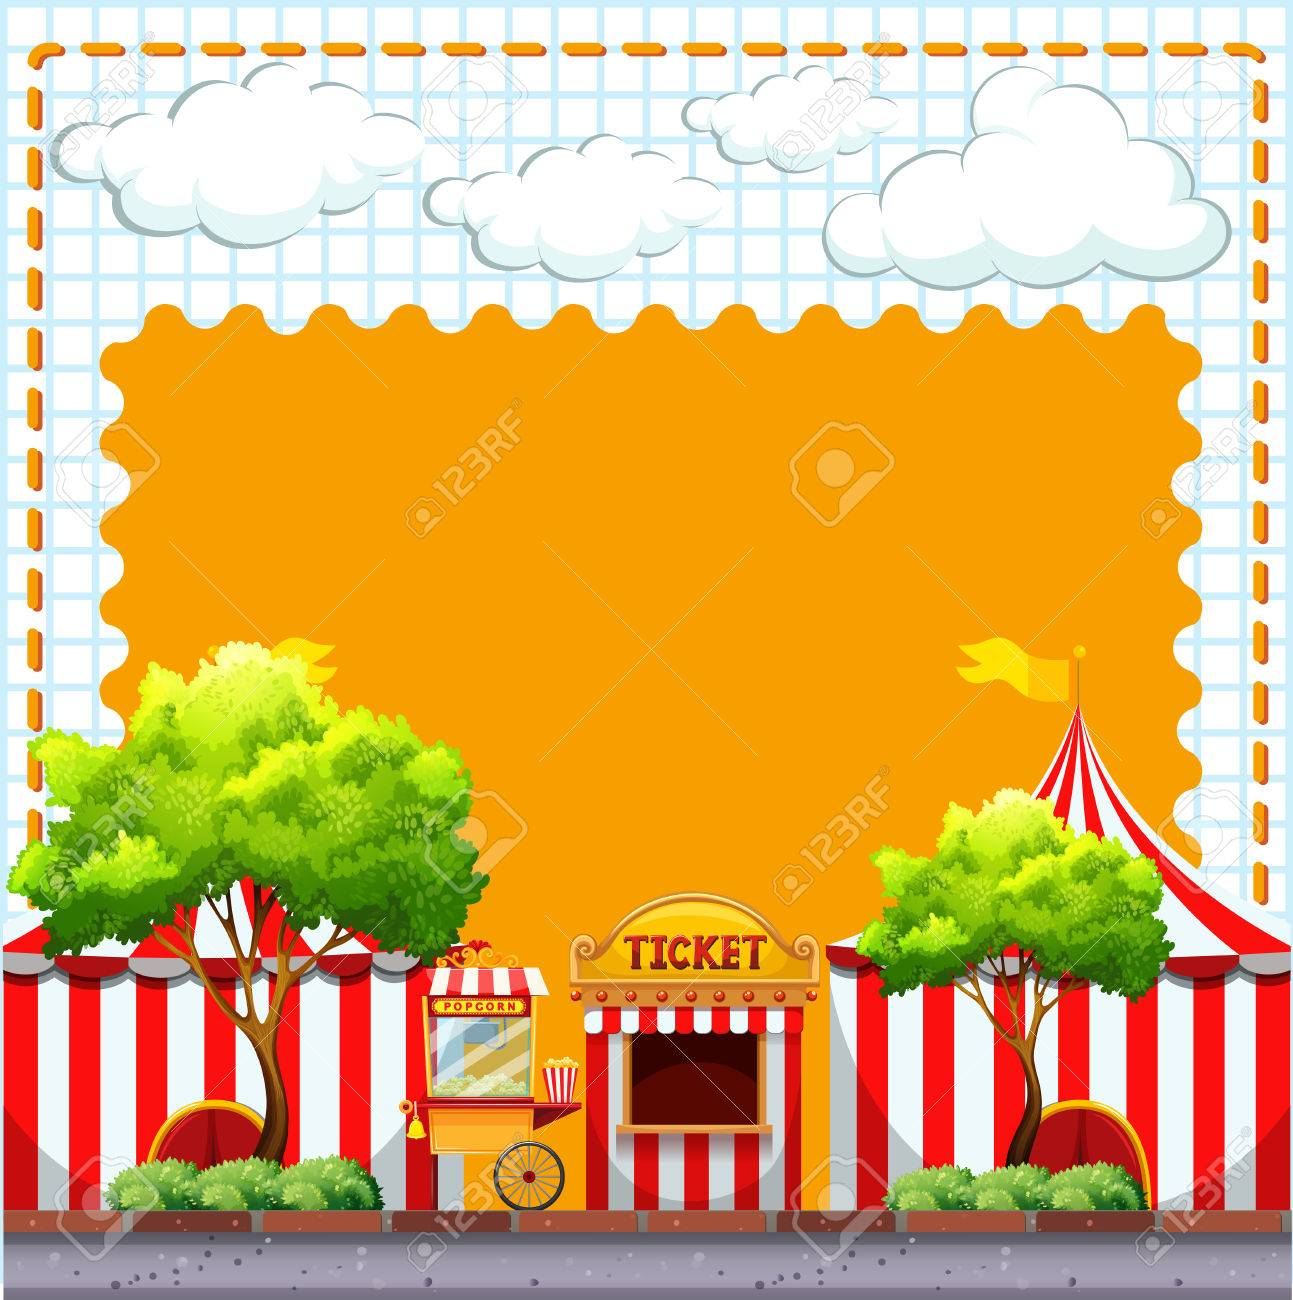 paper design with circus tents illustration royalty free cliparts